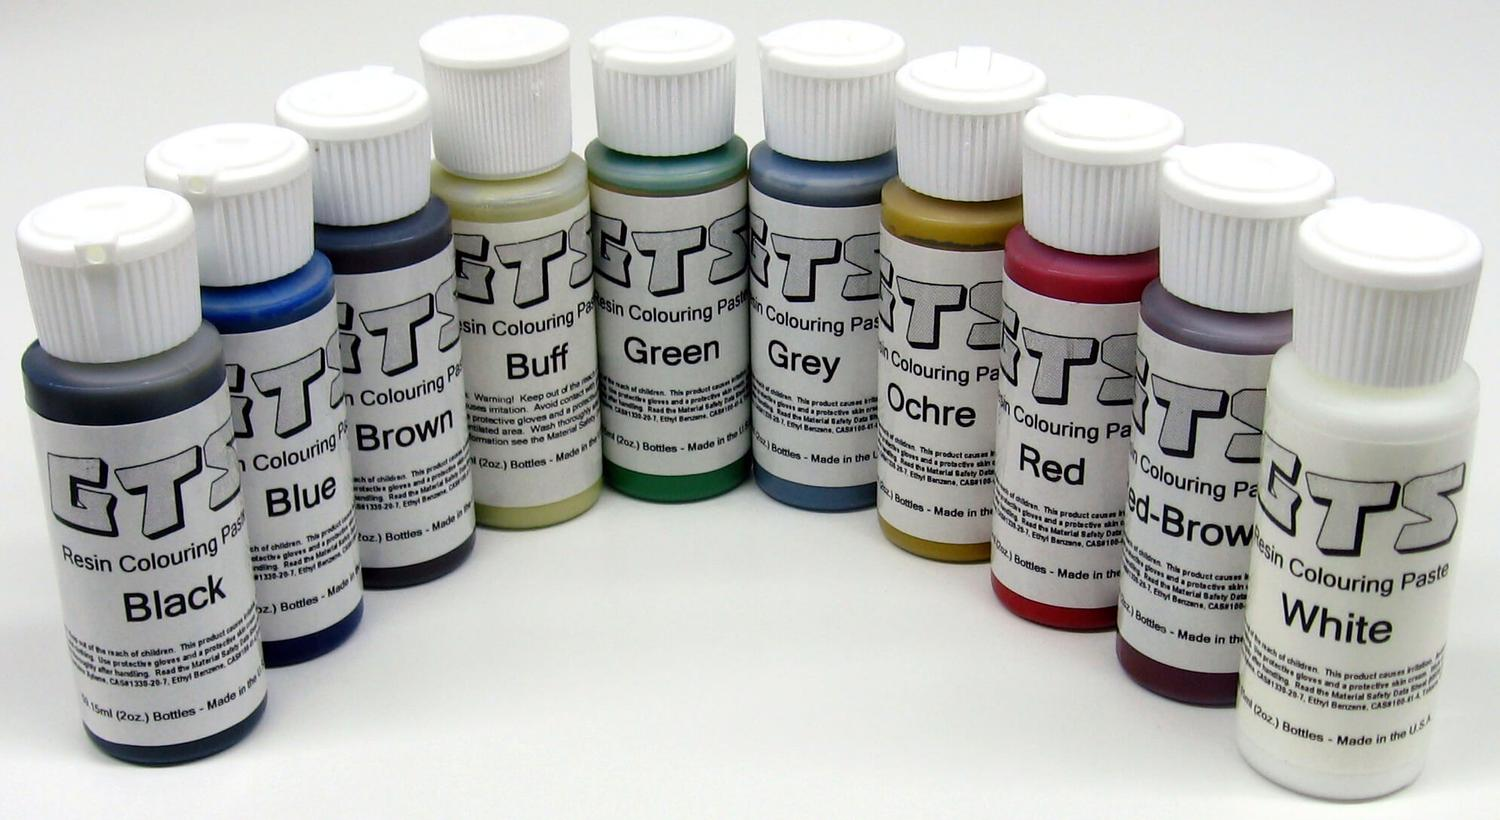 Stone-Stik Colour Pastes